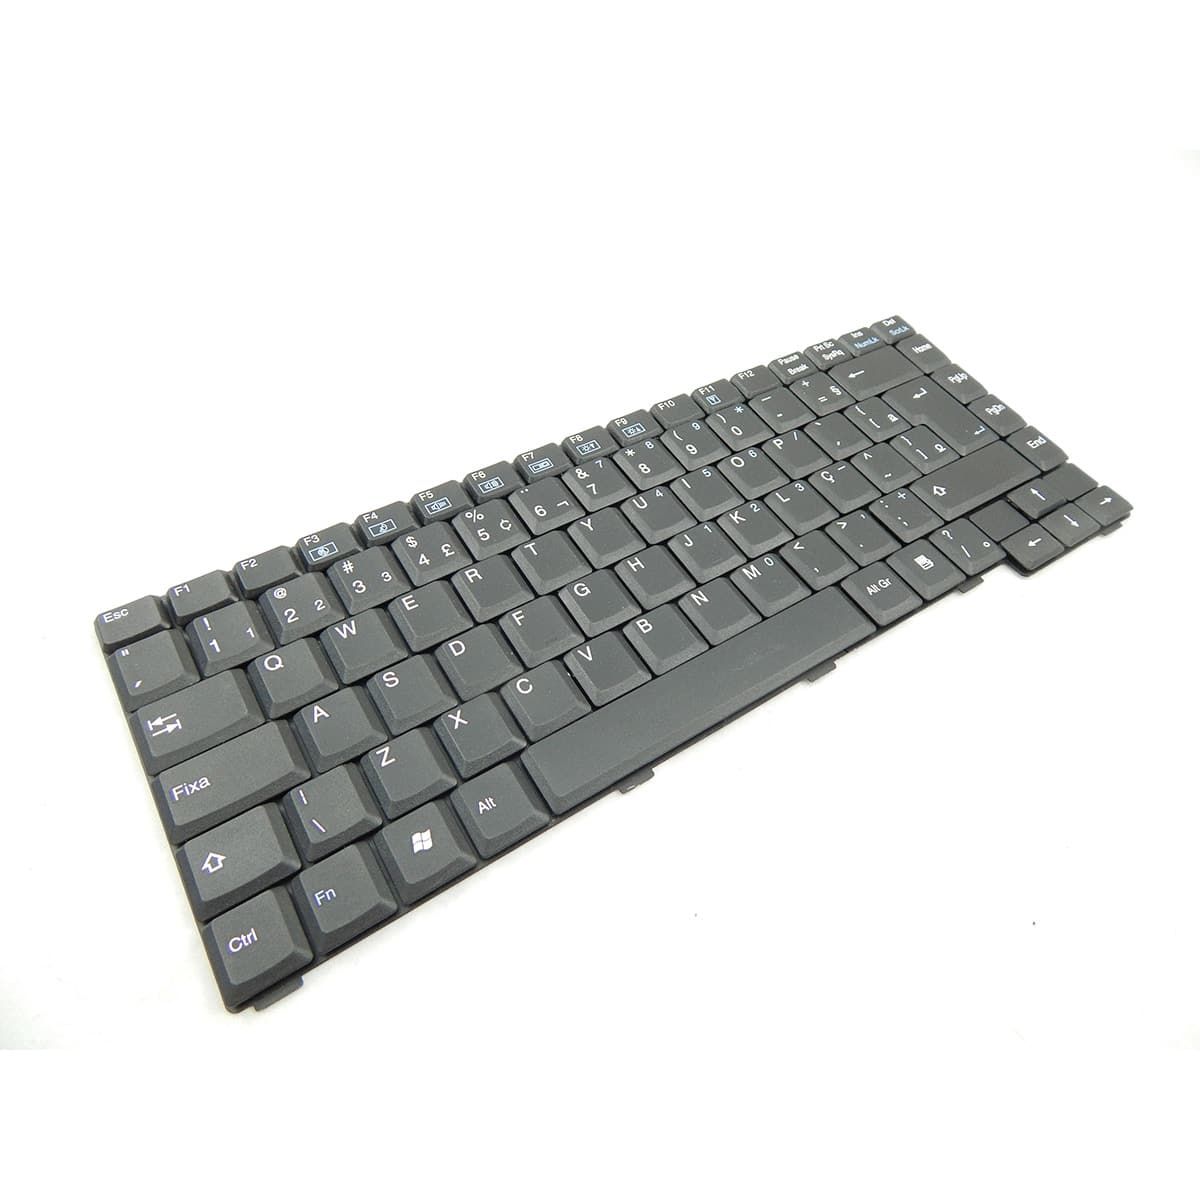 Teclado Notebook Positivo Pn: MP-03086PA-430L / 6-80-M55G0-331-1